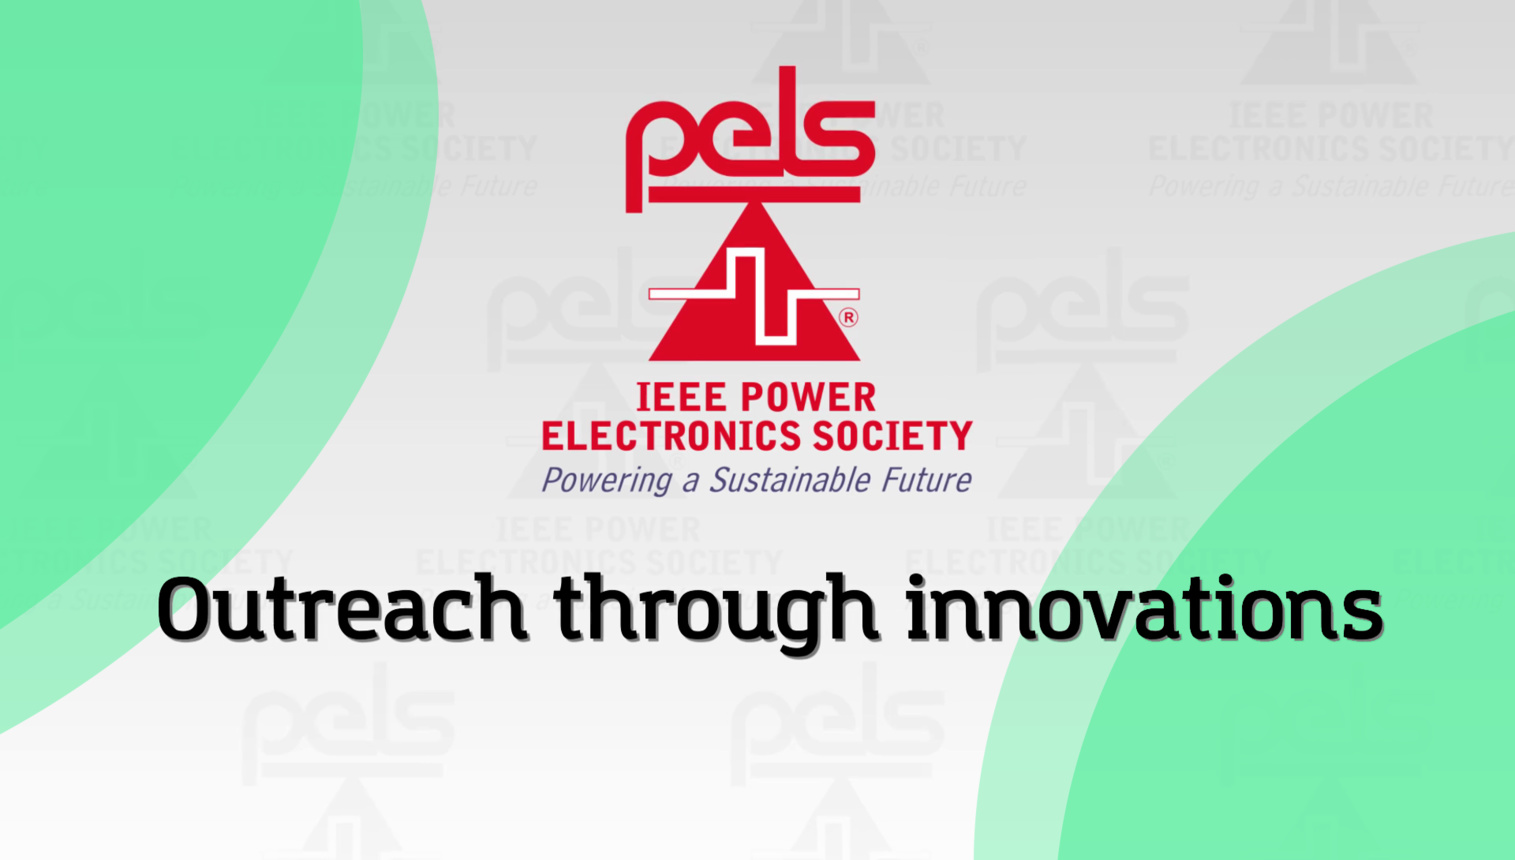 PELS Benefits: Outreach Through Innovations